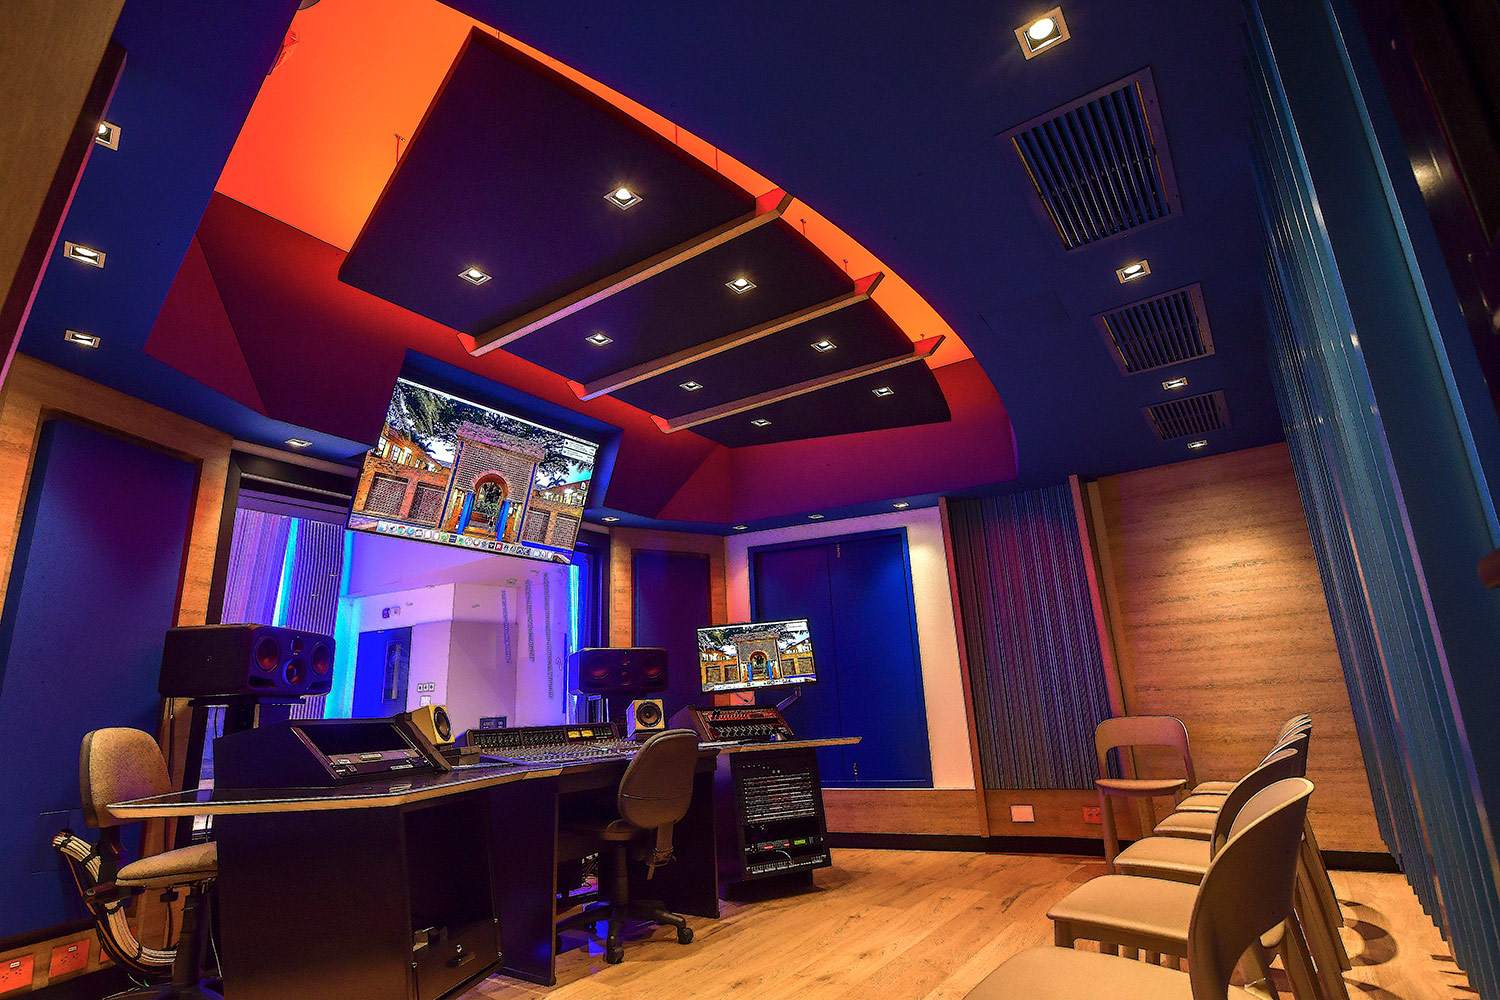 Universidad ICESI new world-class recording studio facility designed by WSDG. Control Room B.